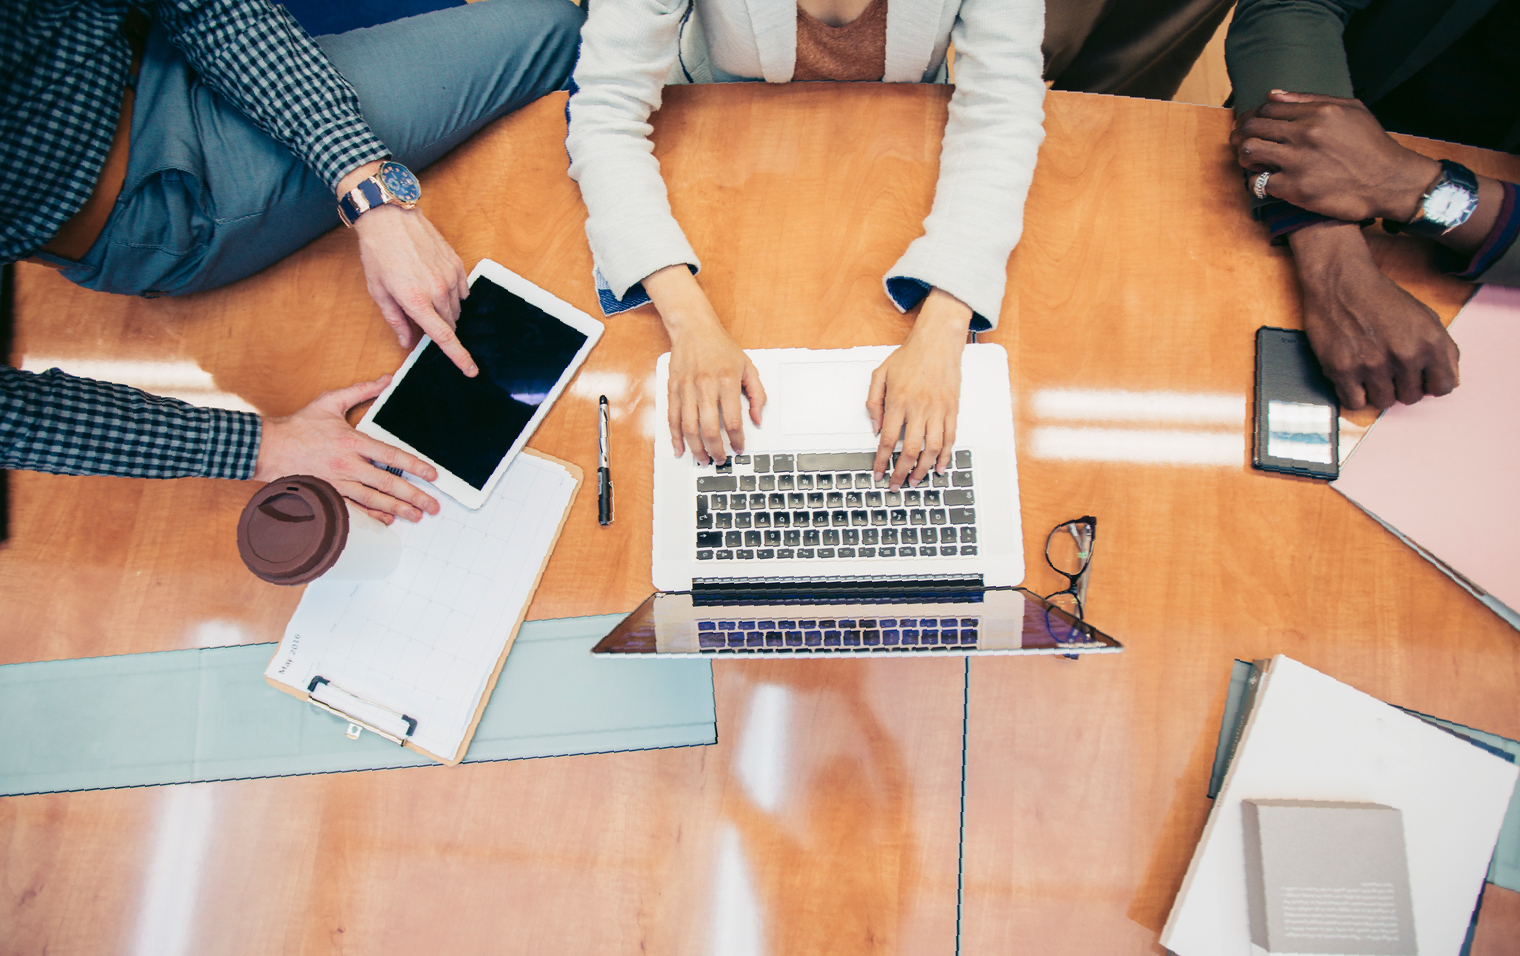 MS_Agency_Blog_MAY_5_Ways_to_Get_Started_Corp_Website_IMAGES_4_WordPress_Steering_Committee_Image